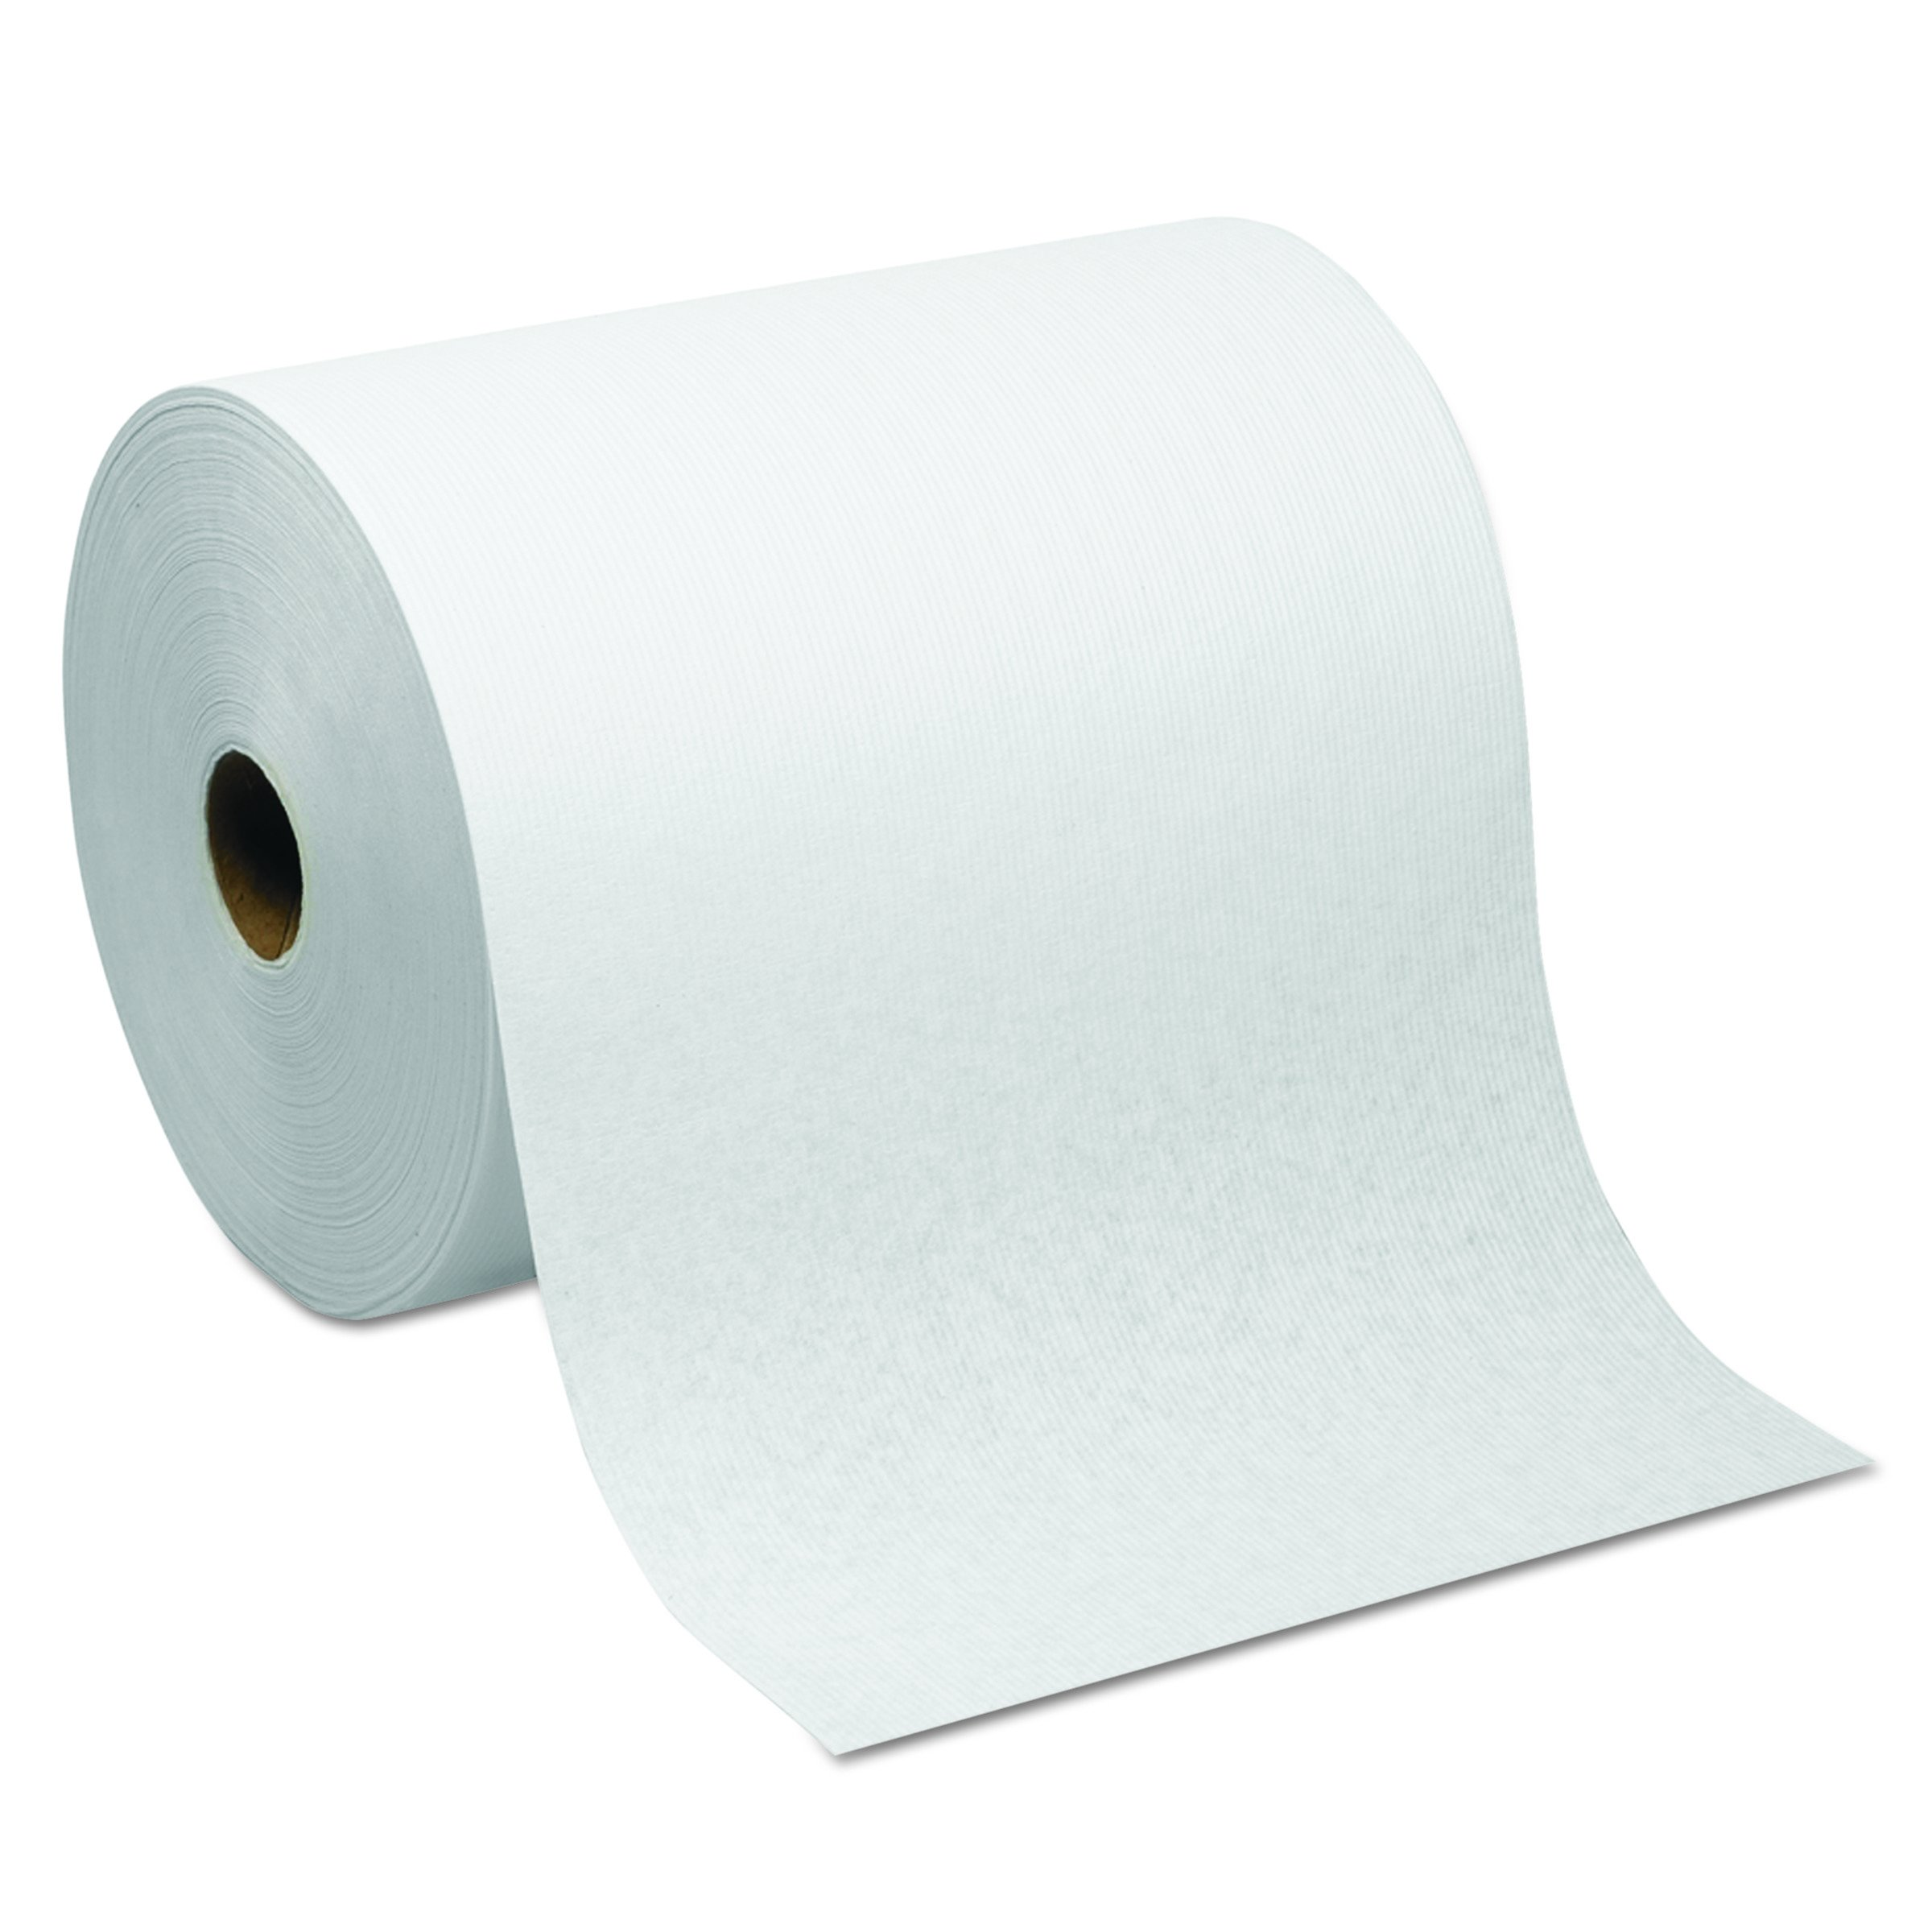 Towlmastr 218-25 Y-Series 2000 Paper Towel Roll, 7.625'' Width x 450' Length, White (Pack of 12)